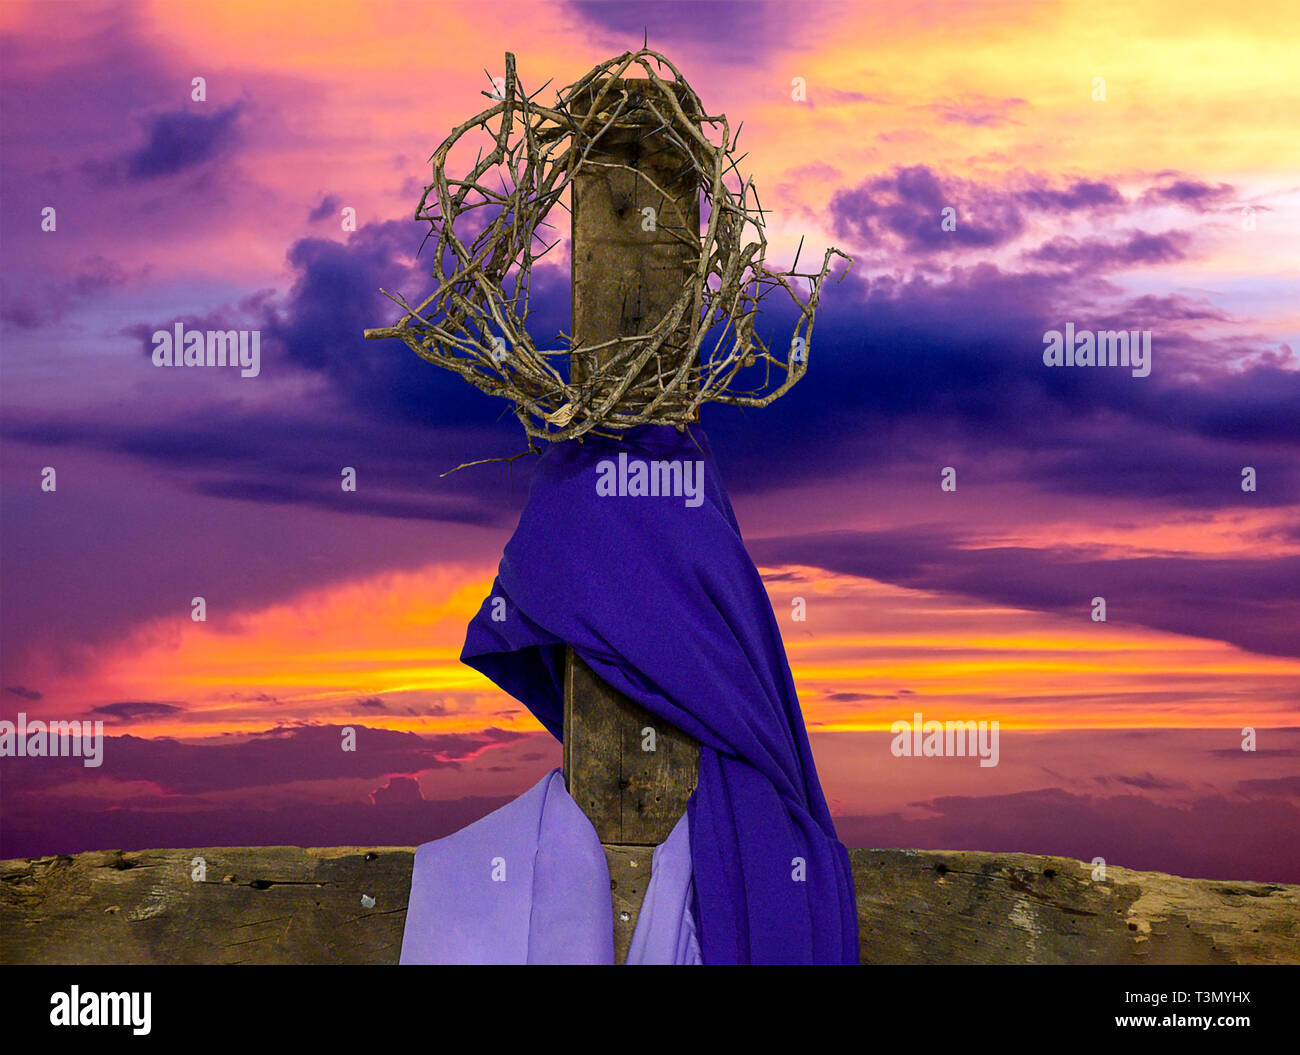 crown of thorns on rugged wooden cross with purple fabric drape and sunrise sky - Stock Image